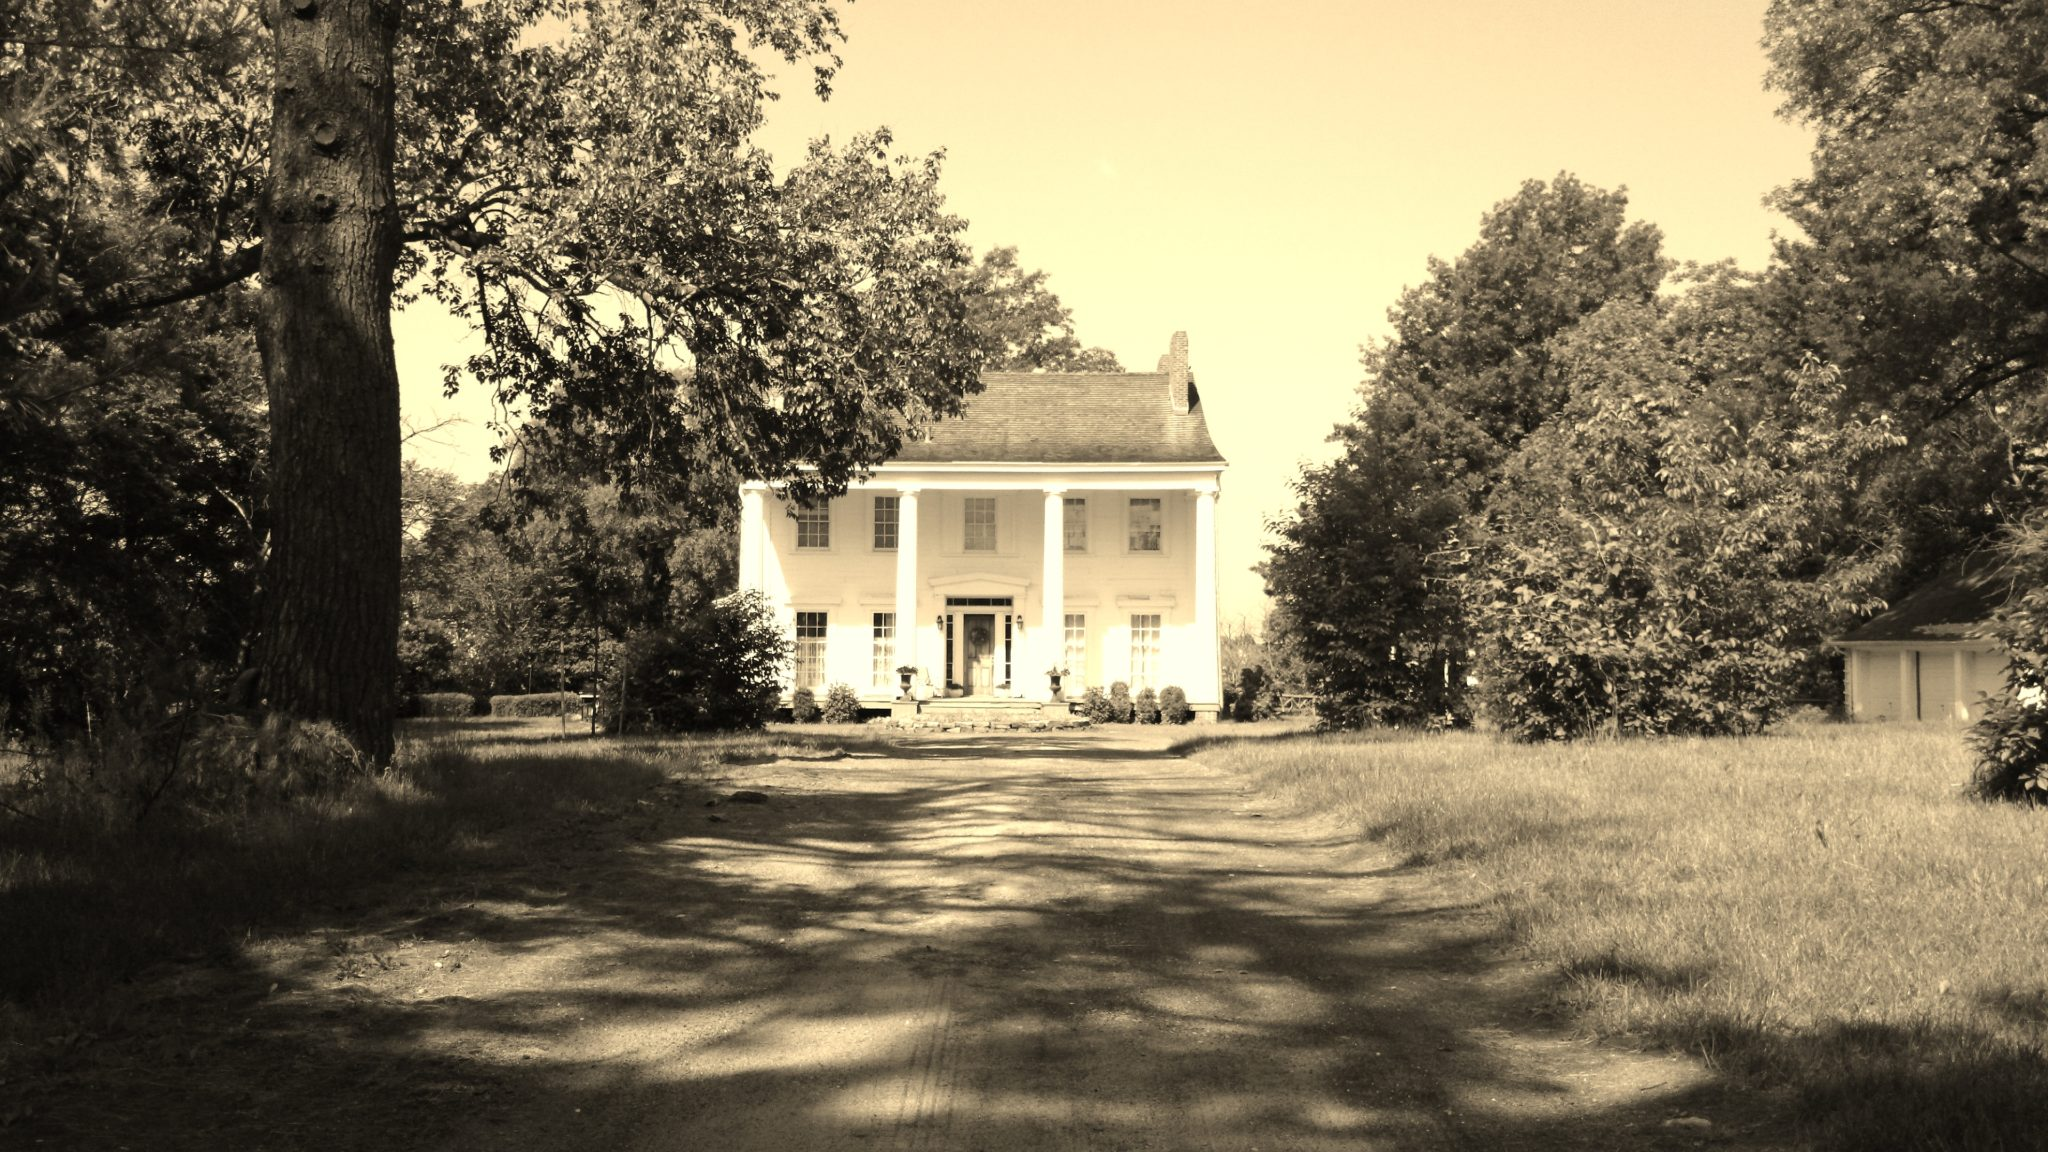 The H H Biddle House